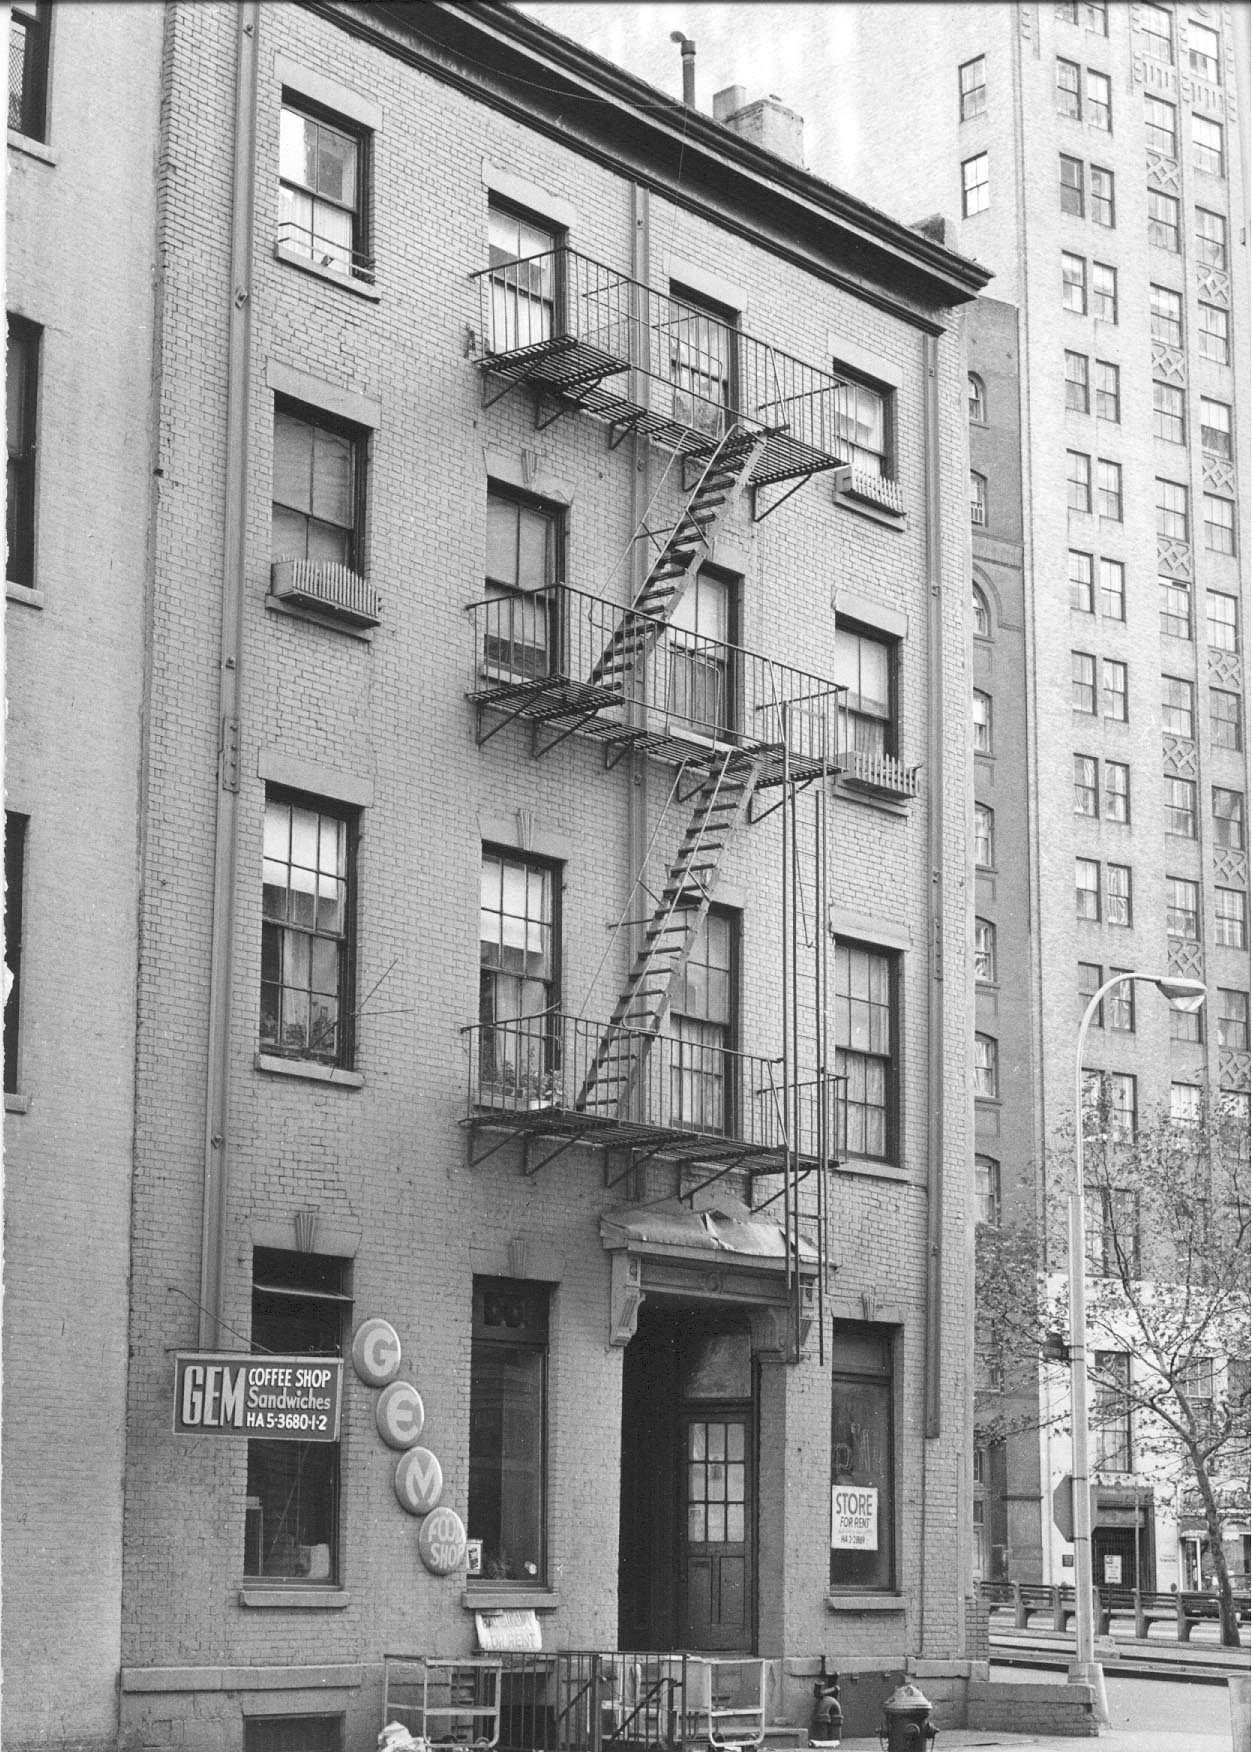 Undated photo of the Robert and Anne Dickey House, 67 Greenwich Street